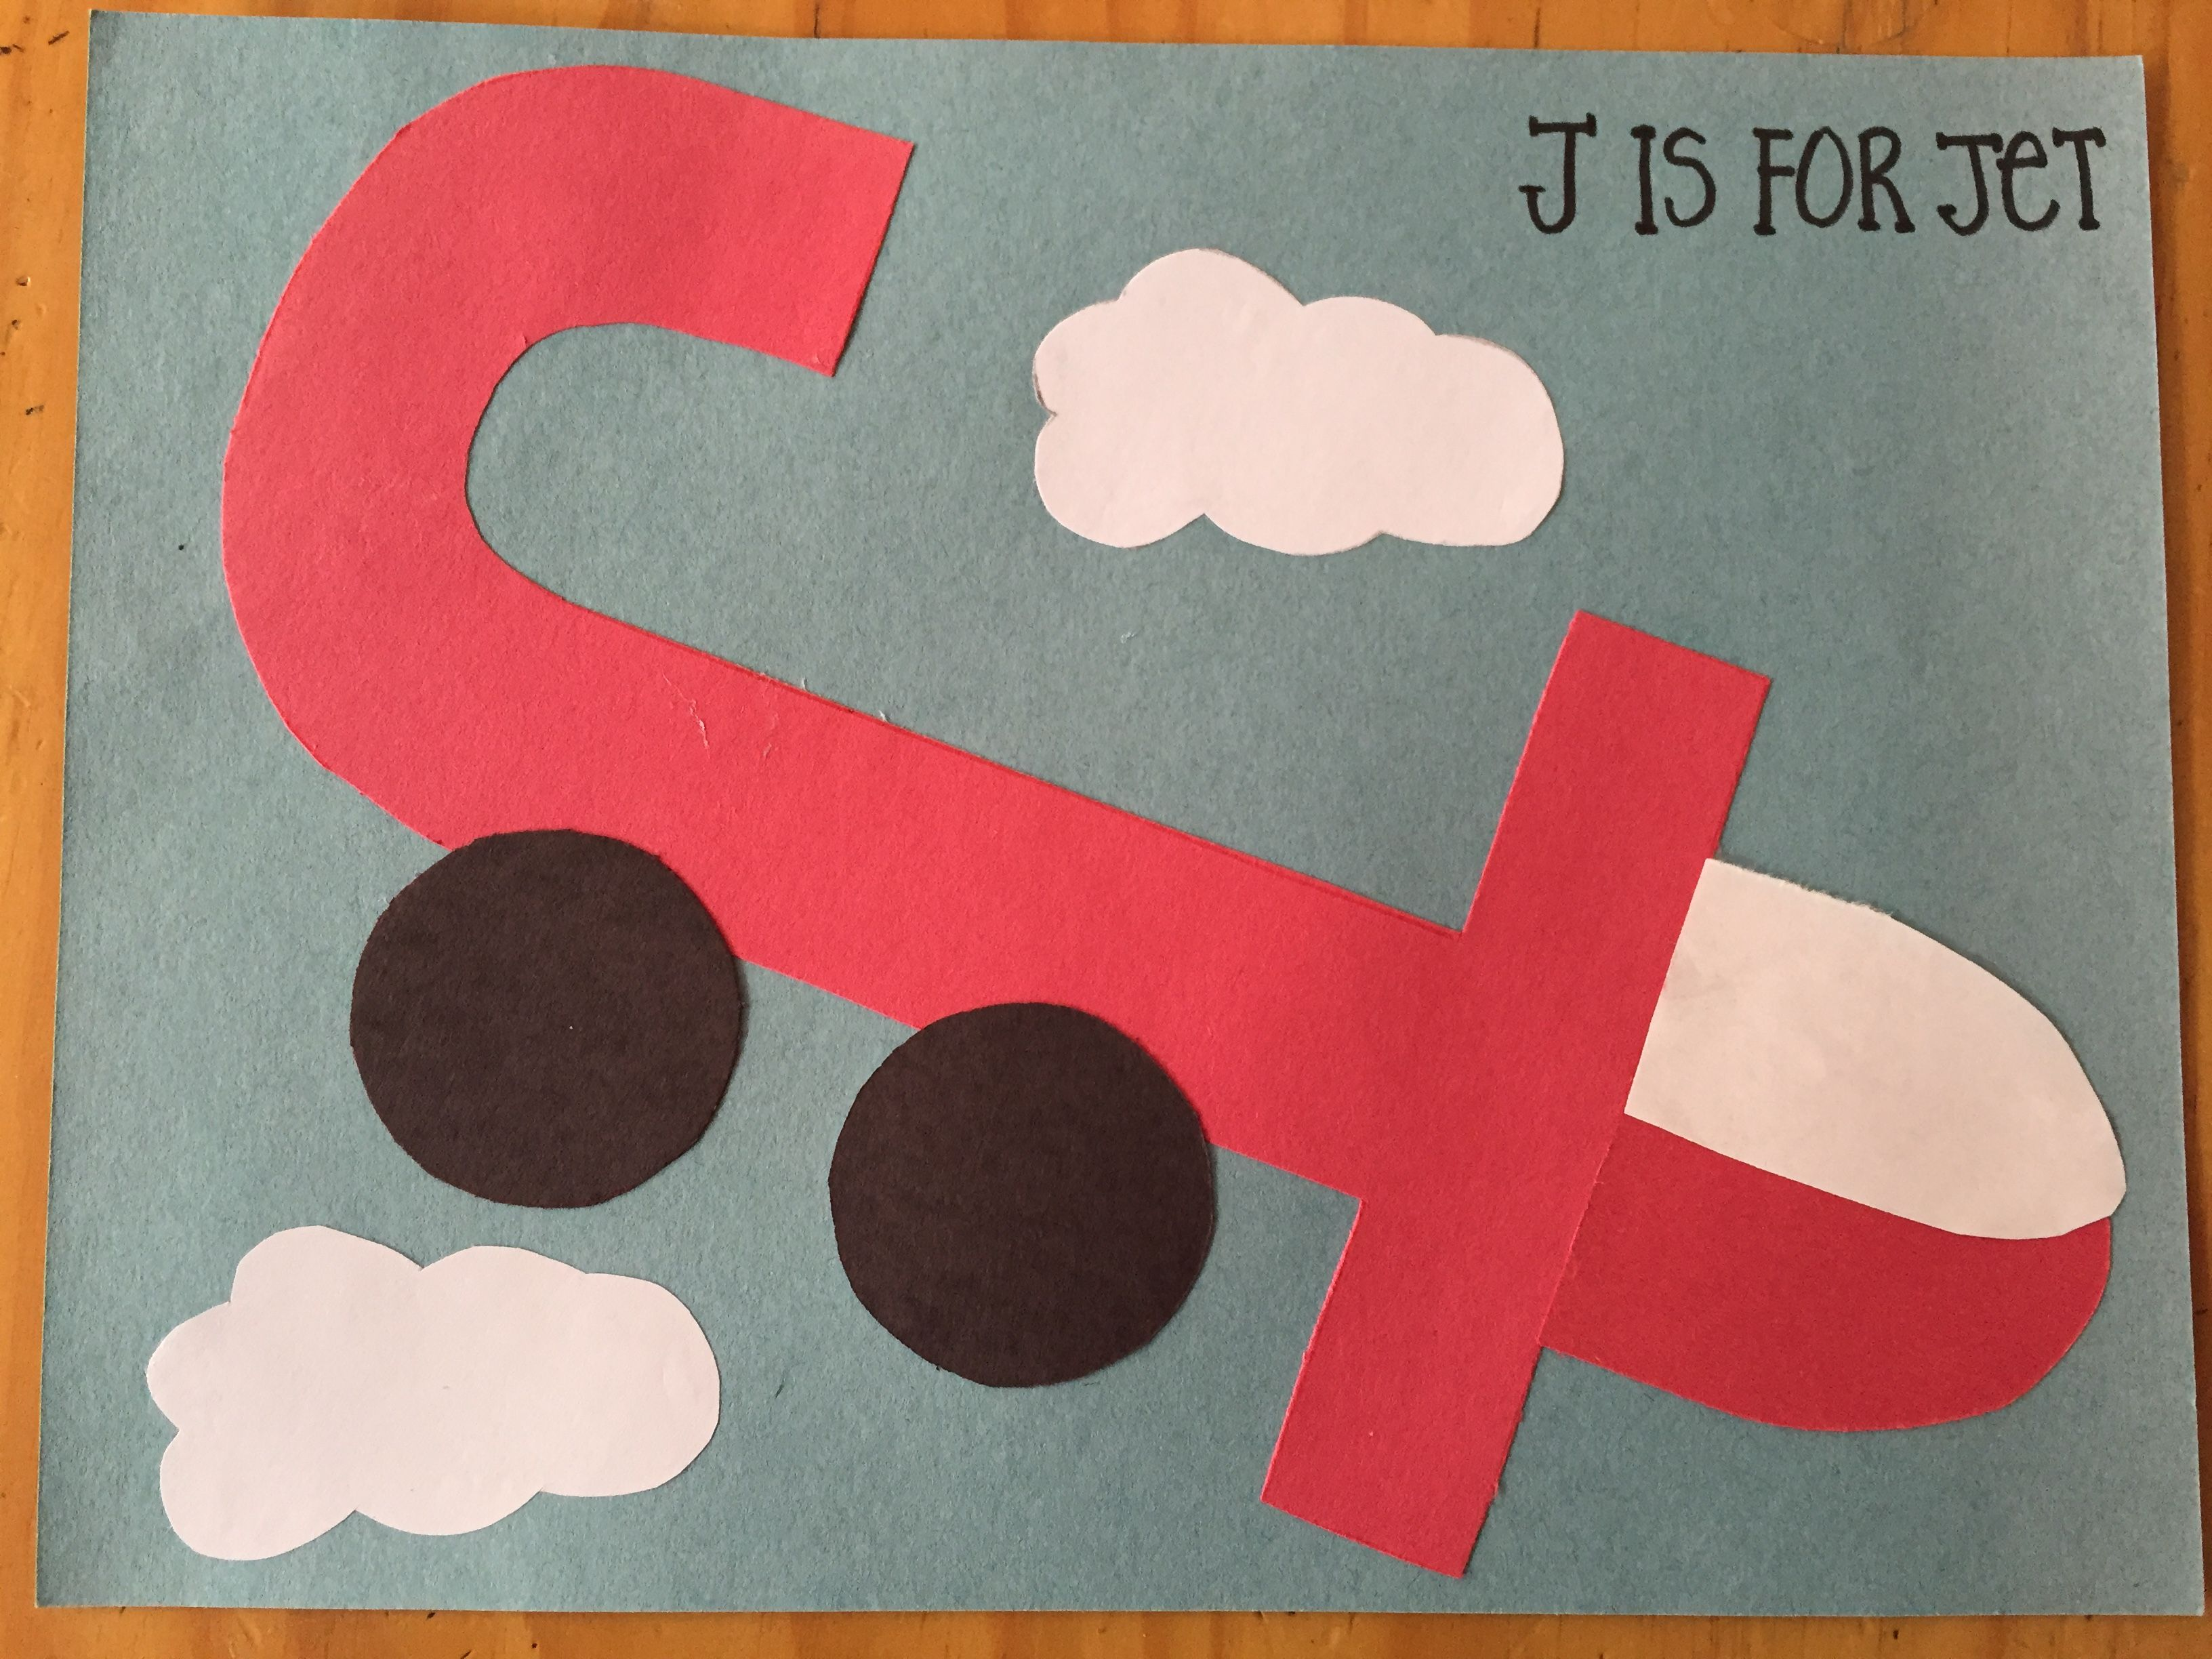 J Is For Jet Made By Diana Diaz At K2 Letterj Jisfor